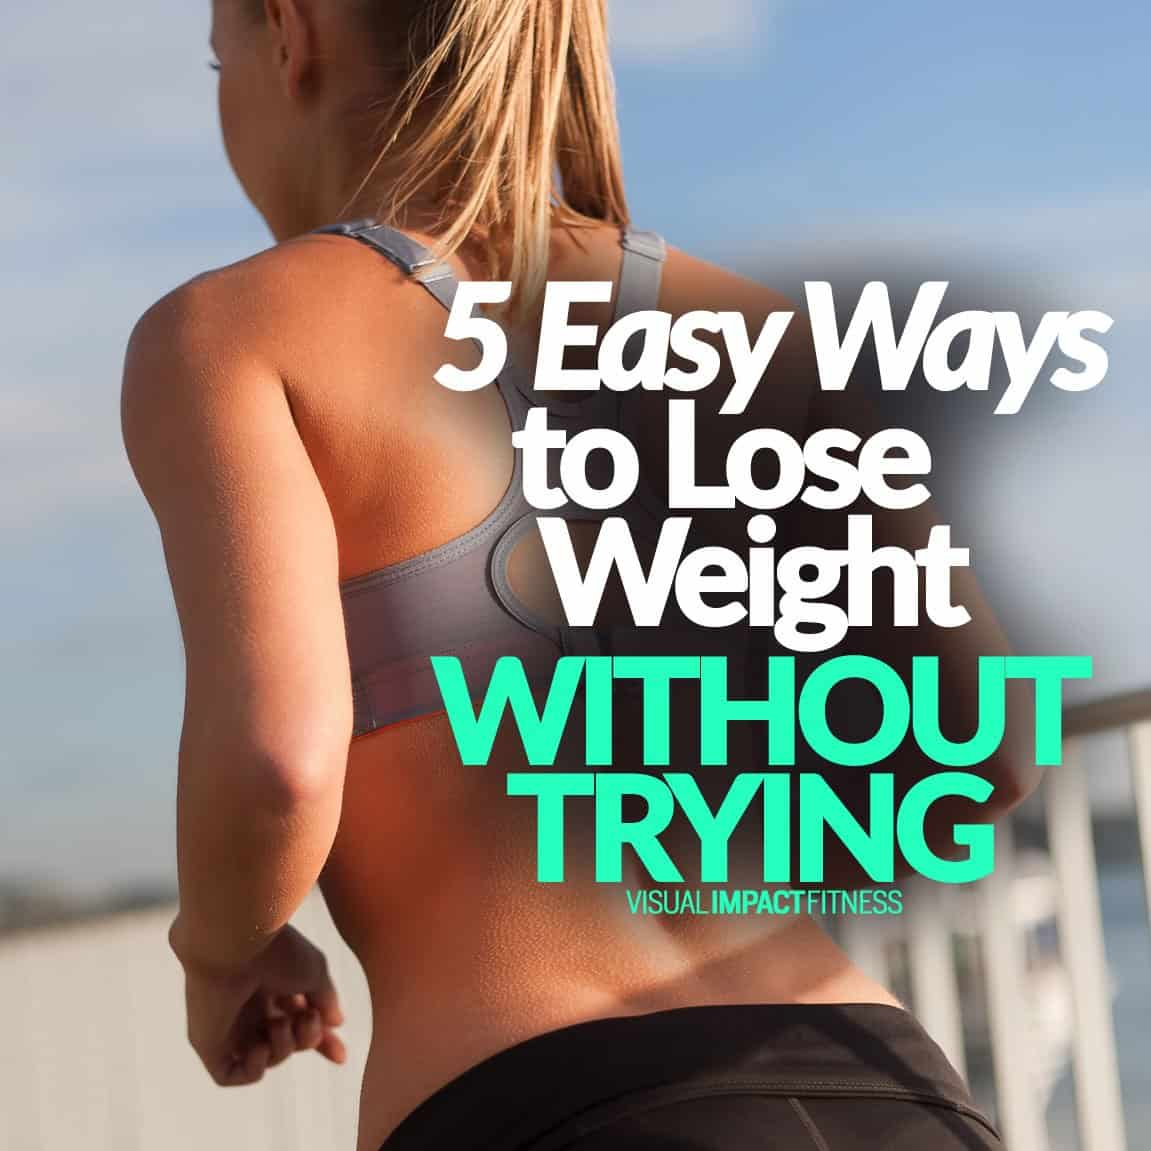 5 Easy Ways to Lose Weight (WITHOUT TRYING)